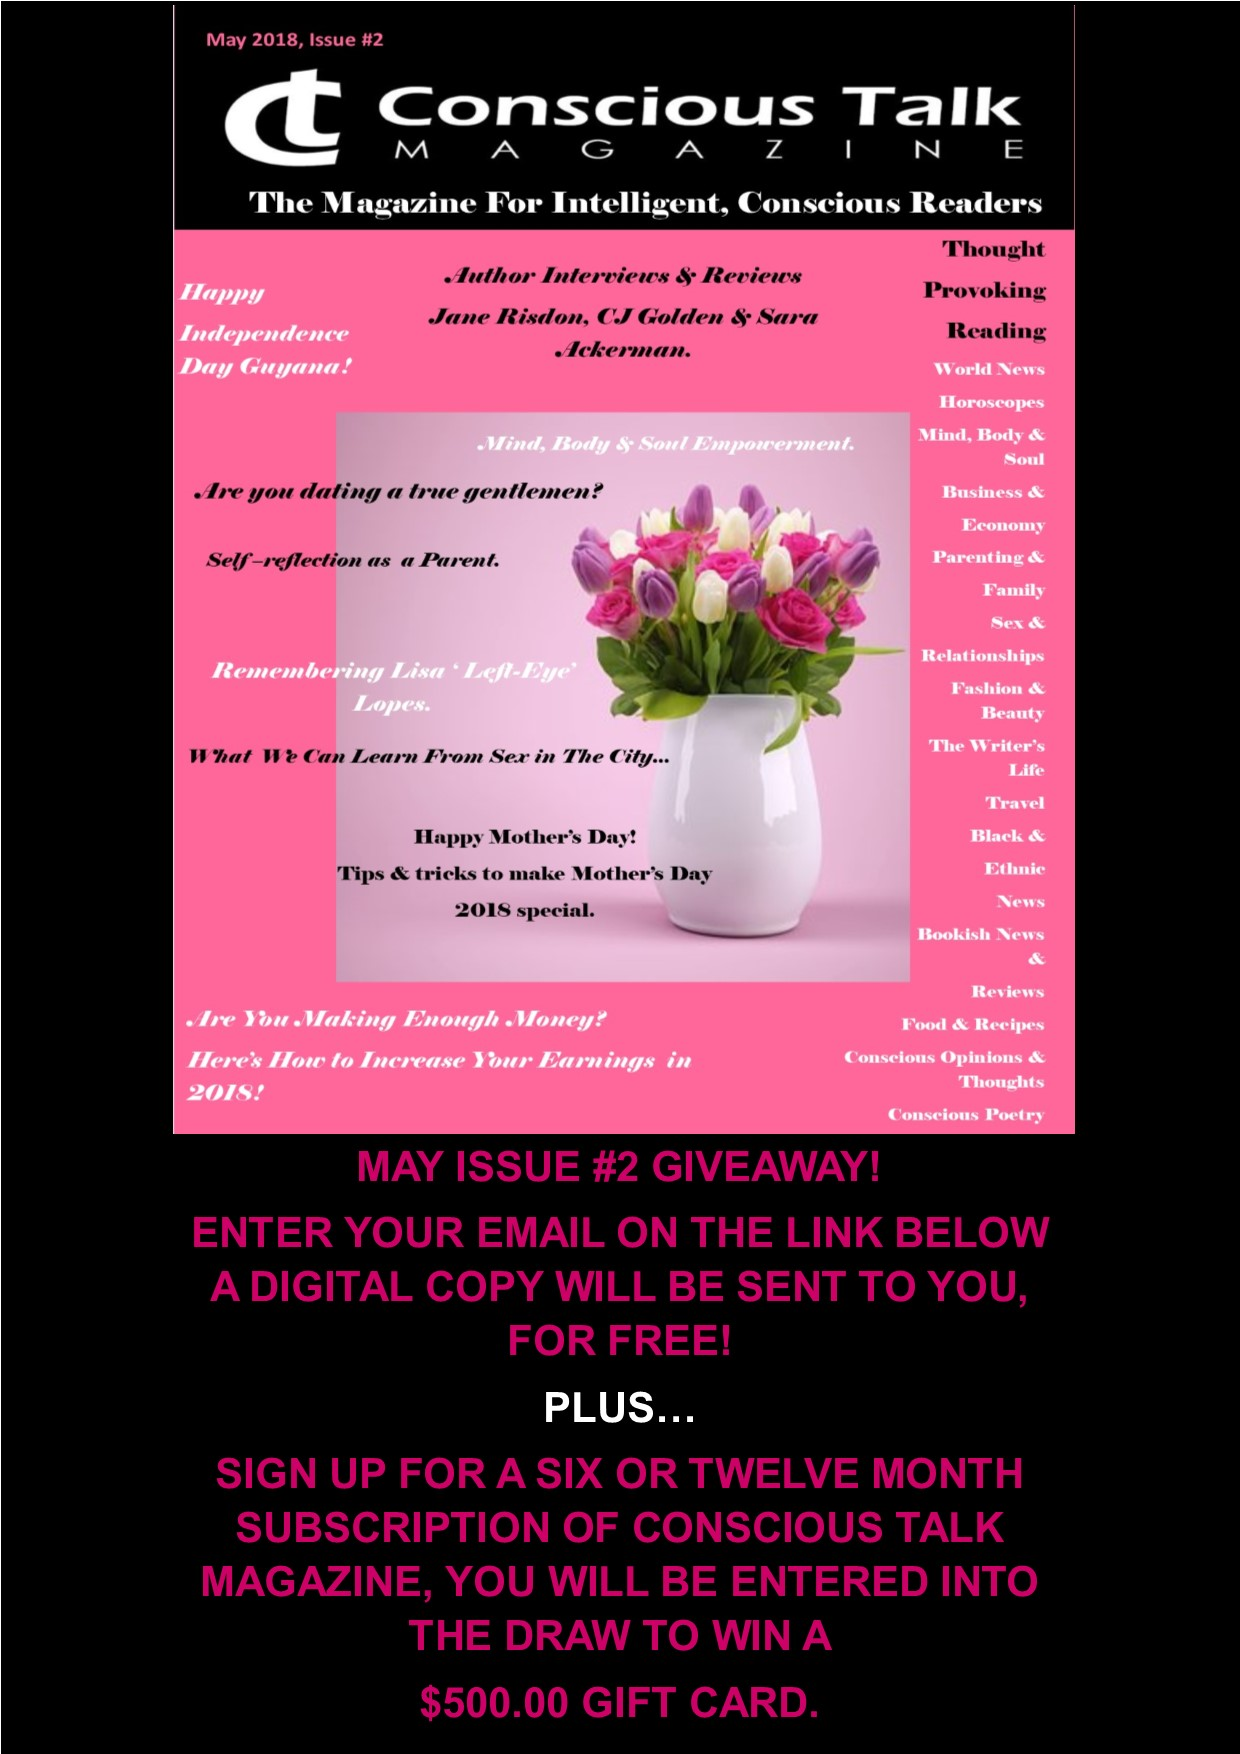 May Complimentary Issue Giveaway